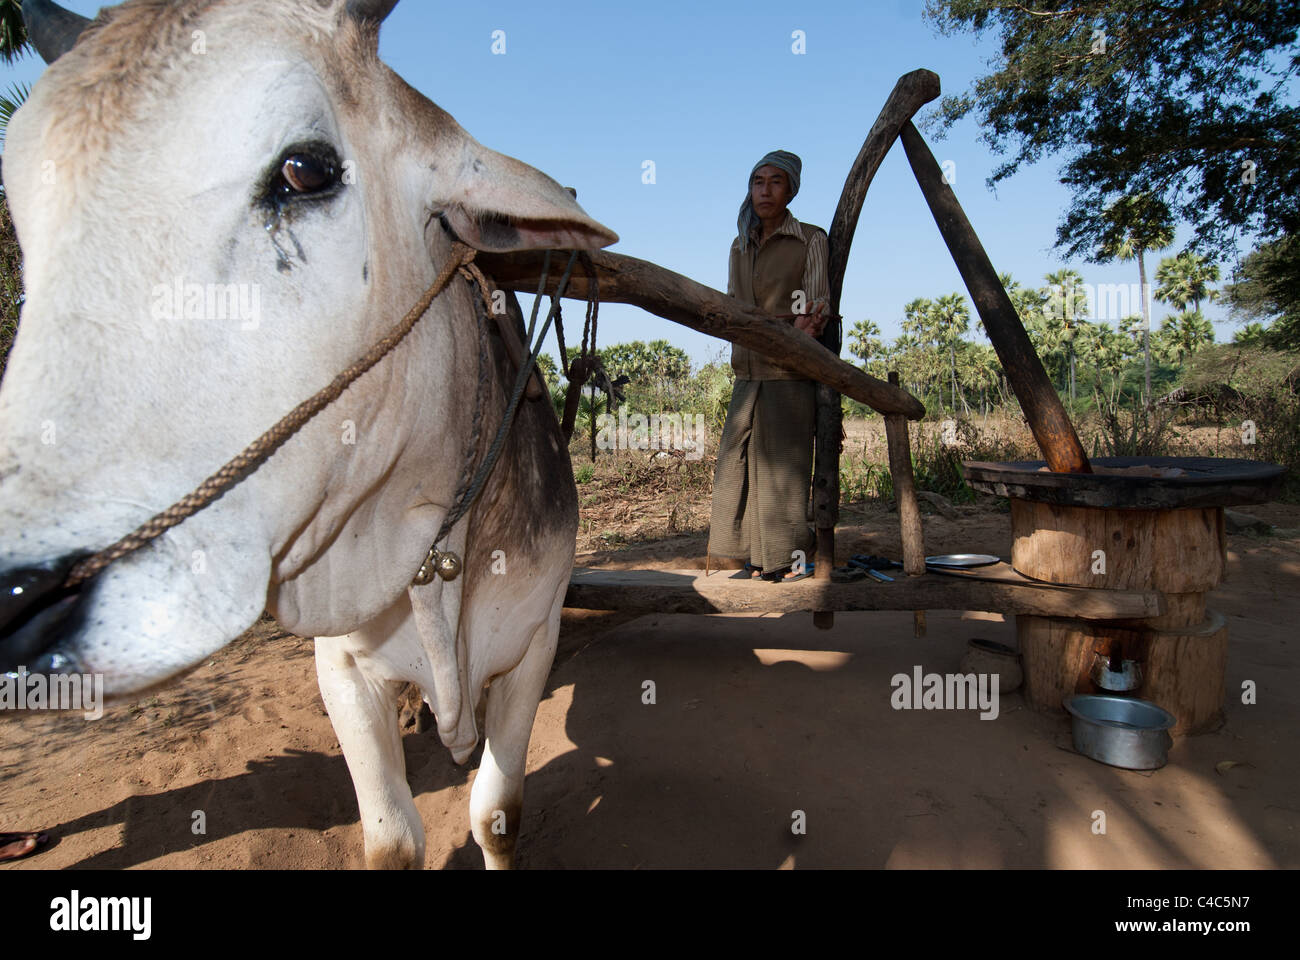 Man driving an ox at a simple grain mill where oil is extracted, Bagan plains, Myanmar - Stock Image